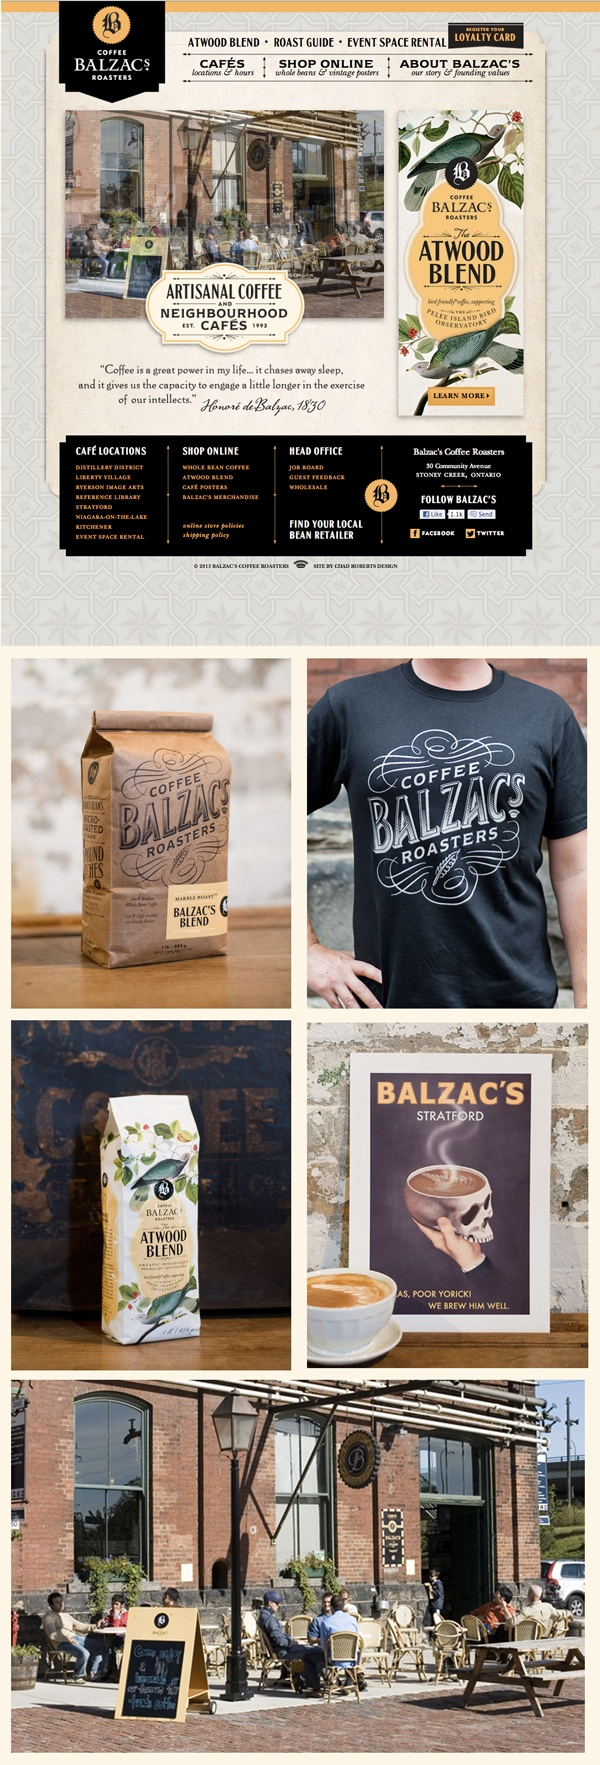 A current favorite branding example from Balzac's Coffee Roasters.  Solid in the execution down to every last detail.